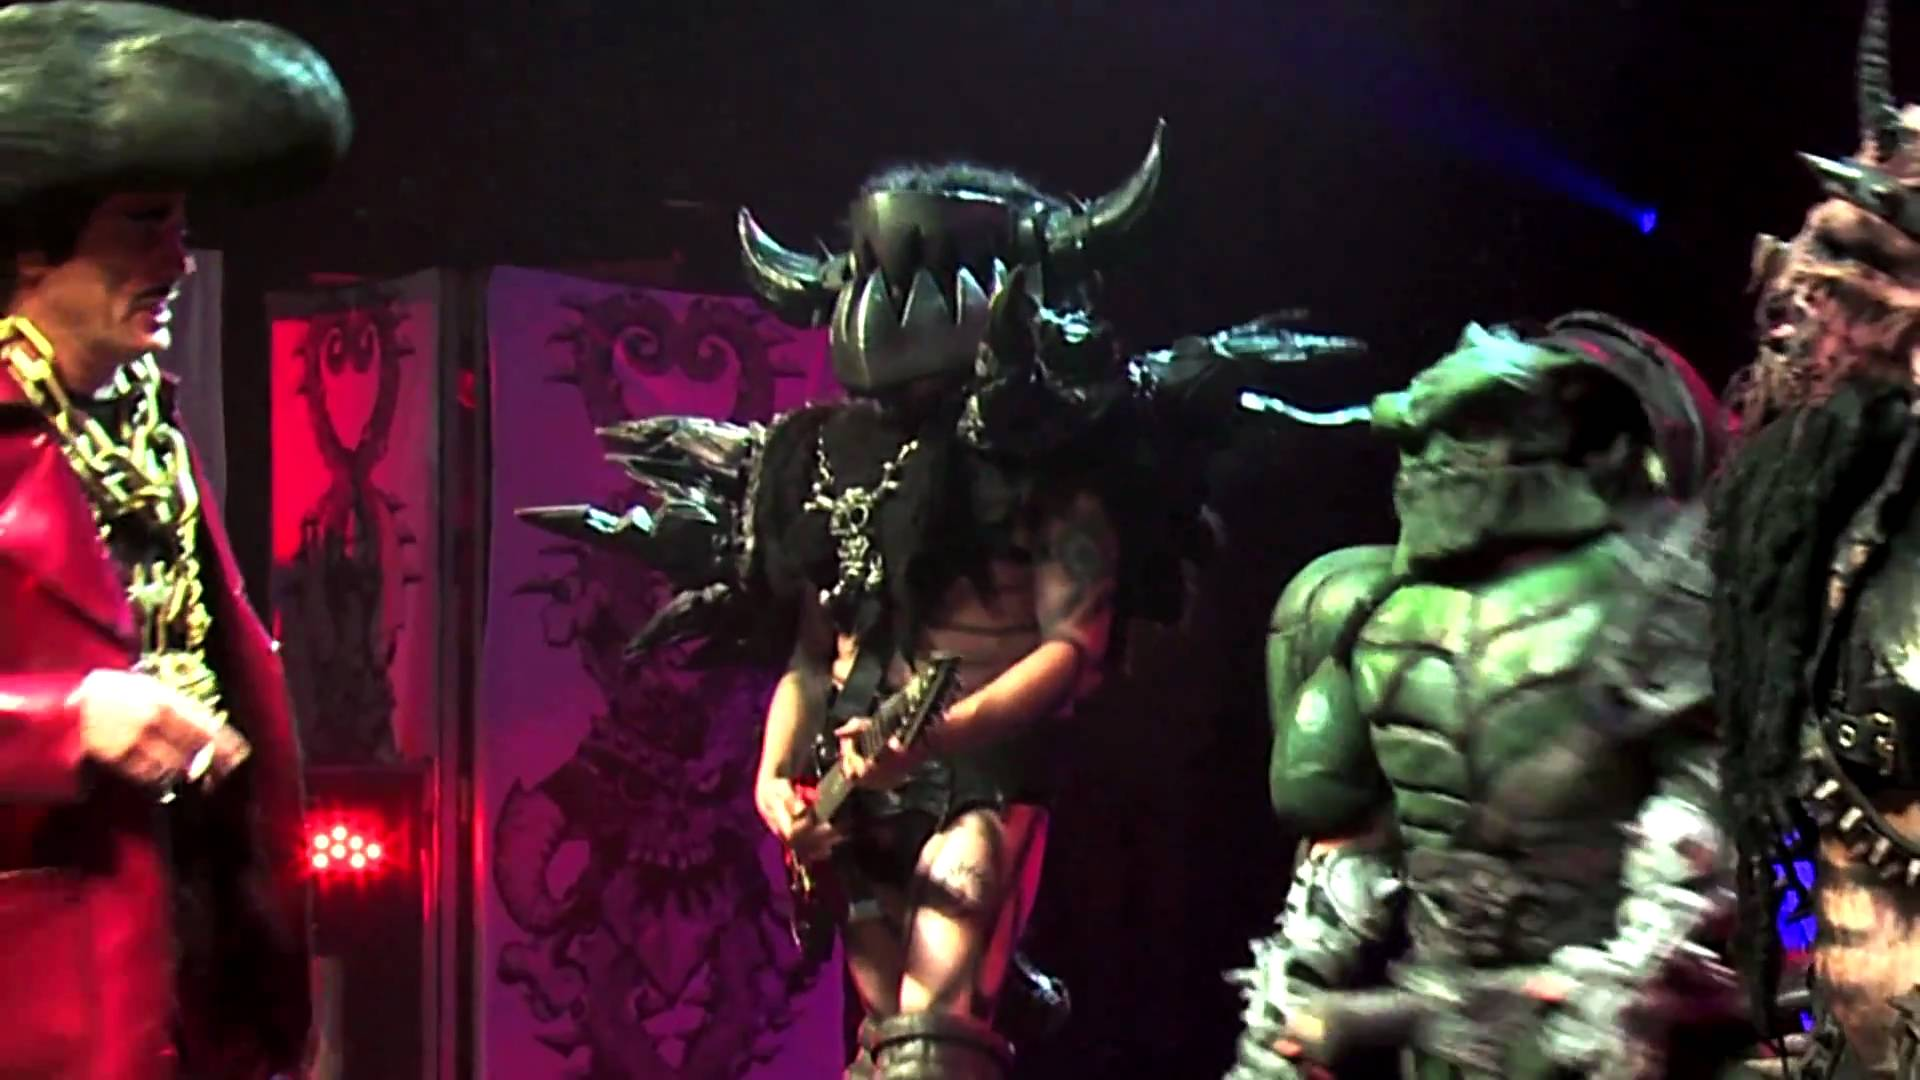 GWAR 'Zombies, March' (OFFICIAL VIDEO)